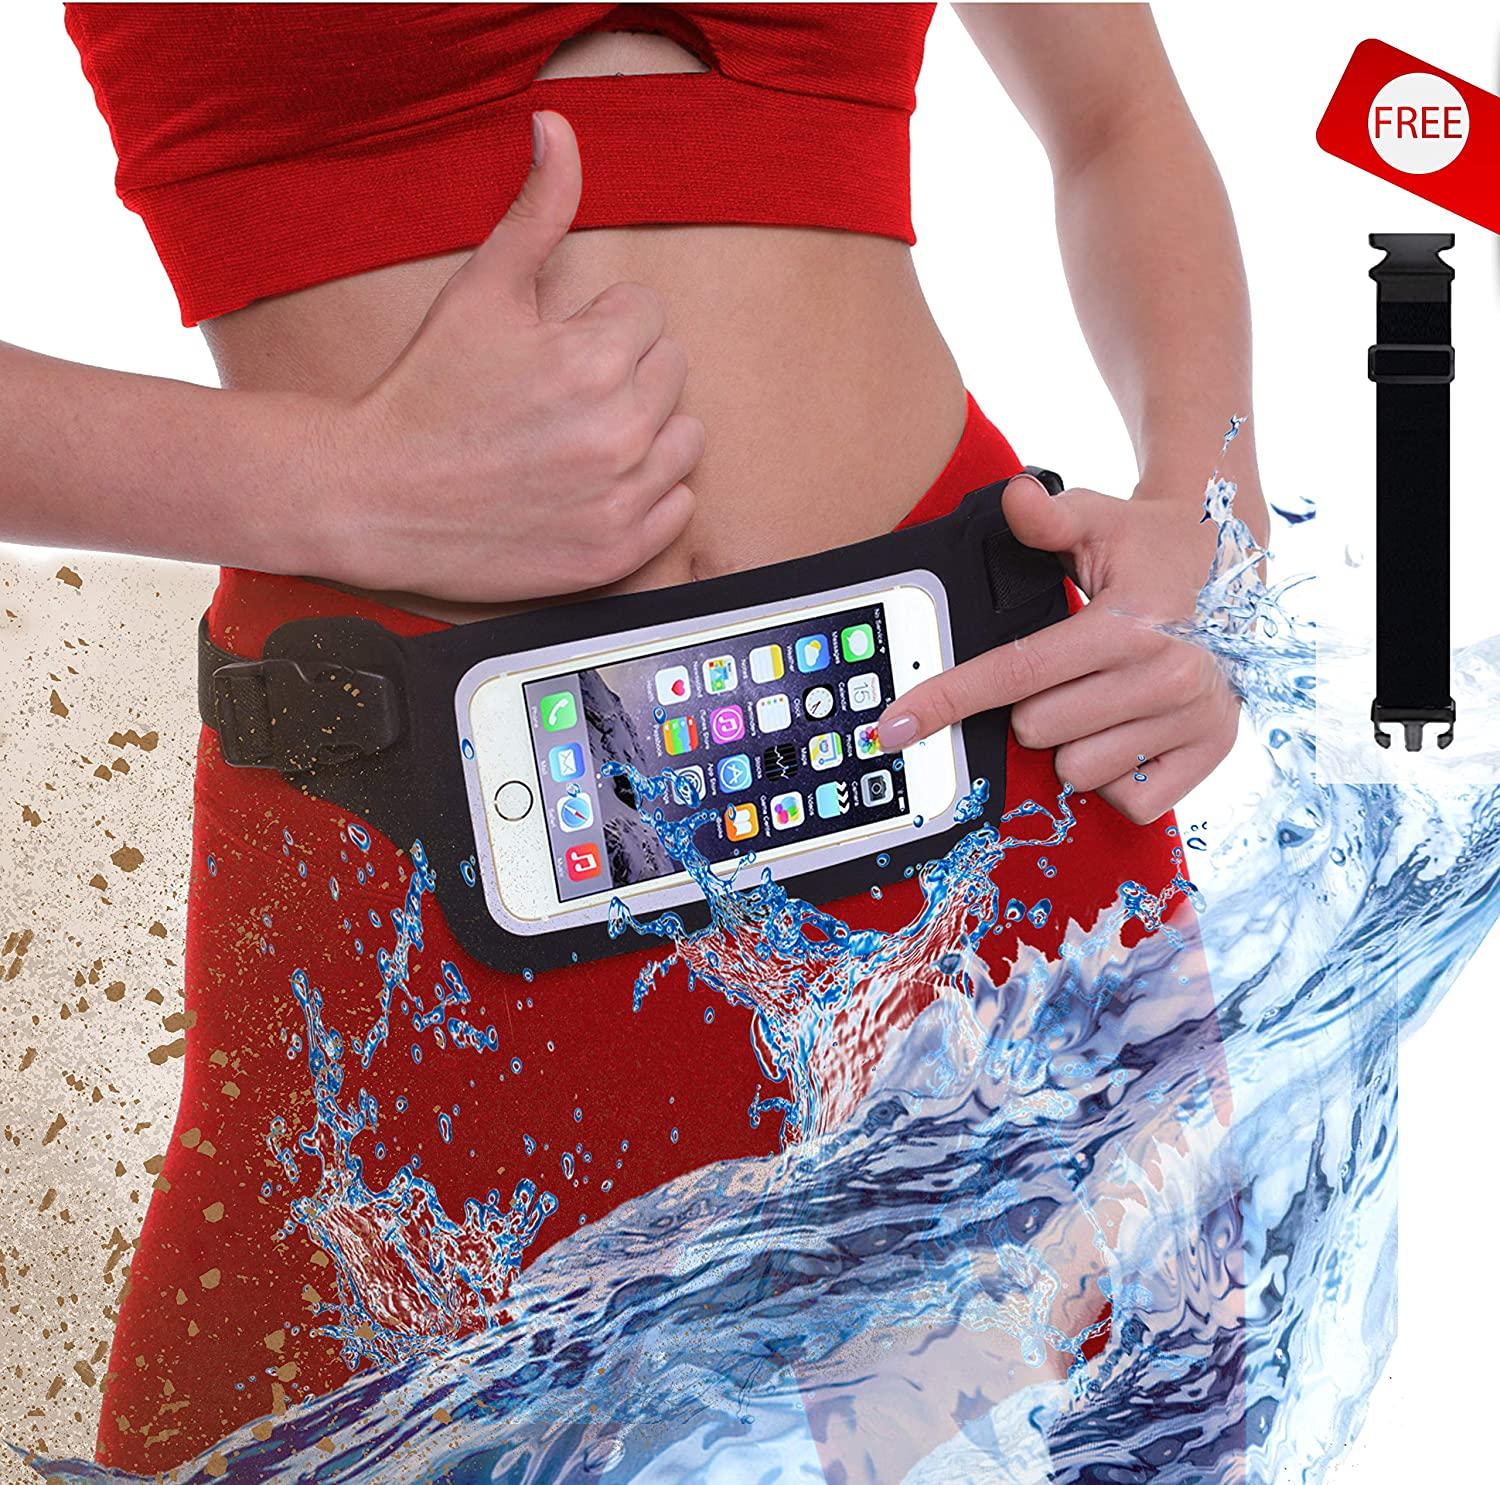 New Waterproof Running Belt Fanny Pack for iPhone 6 7 X 8 8 Plus Android Samsung – W Touchscreen Cover – IPX8 Rated Dry Waist Bag Pouch for OCR, Travel, Beach, Swimming, Kayaking, Rafting and More